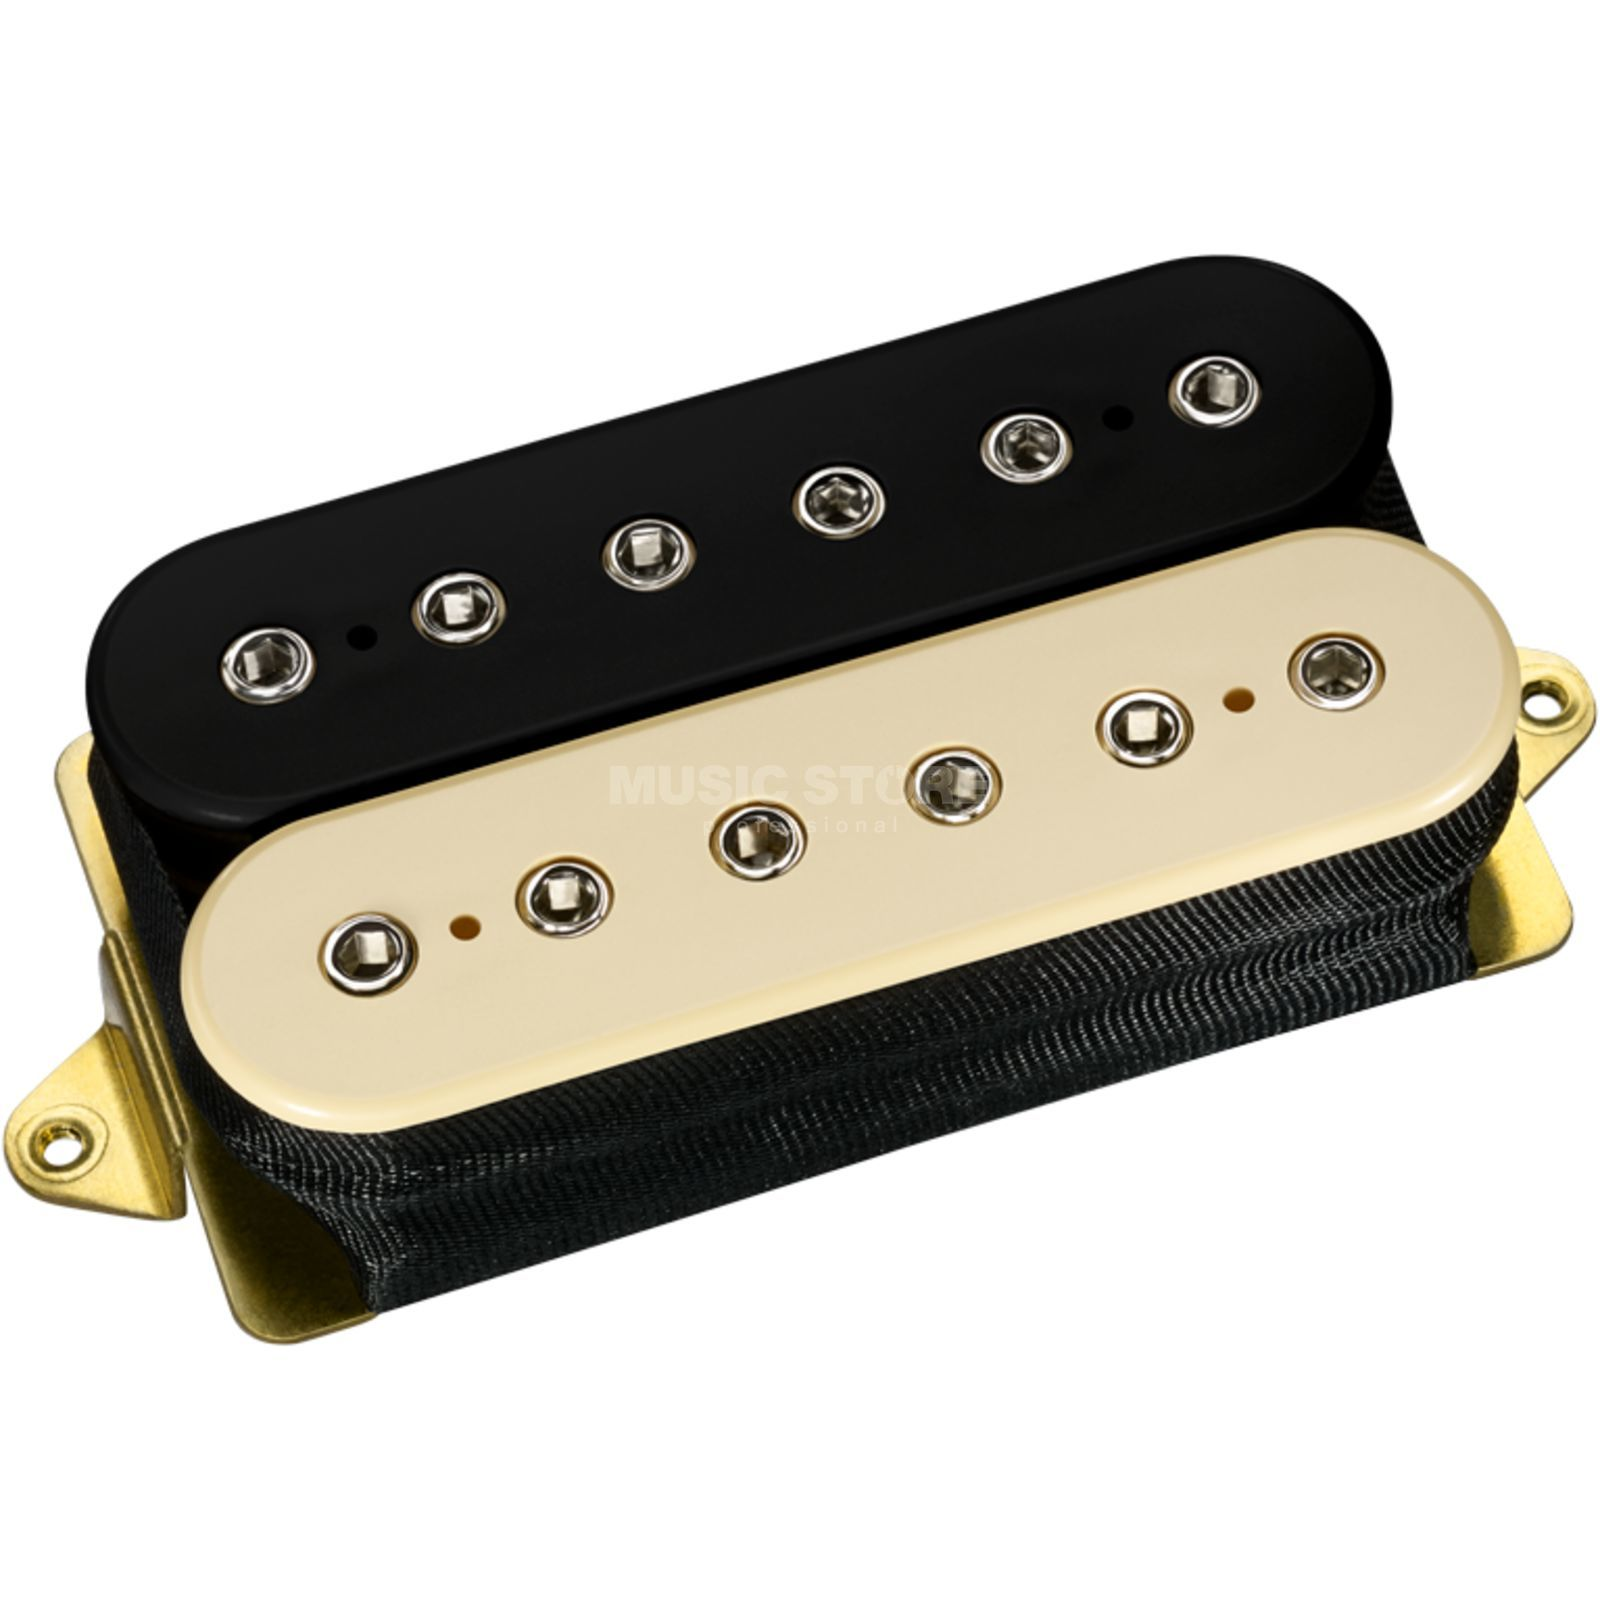 Lovely Bulldogsecurity.com Wiring Thick Telecaster 5 Way Switch Wiring Diagram Solid Bdneww 4pdt Switch Schematic Old Excalibur Remote Start Installation YellowHss Guitar Wiring DiMarzio DP213 BC Zebra PAF Joe